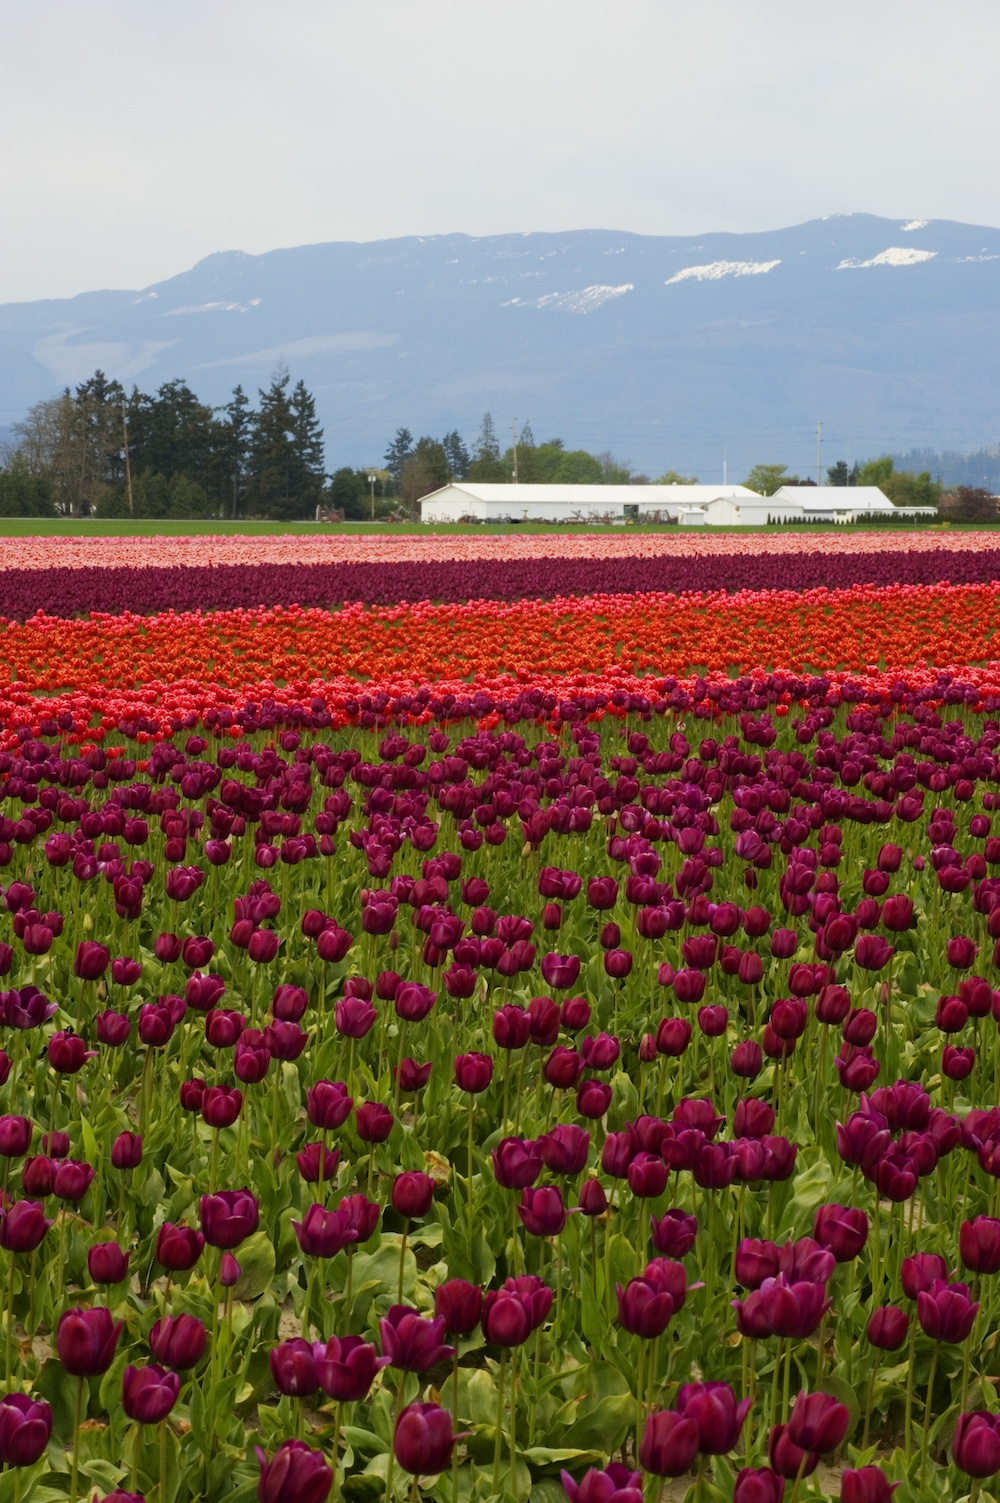 skagit-valley-washington.jpg